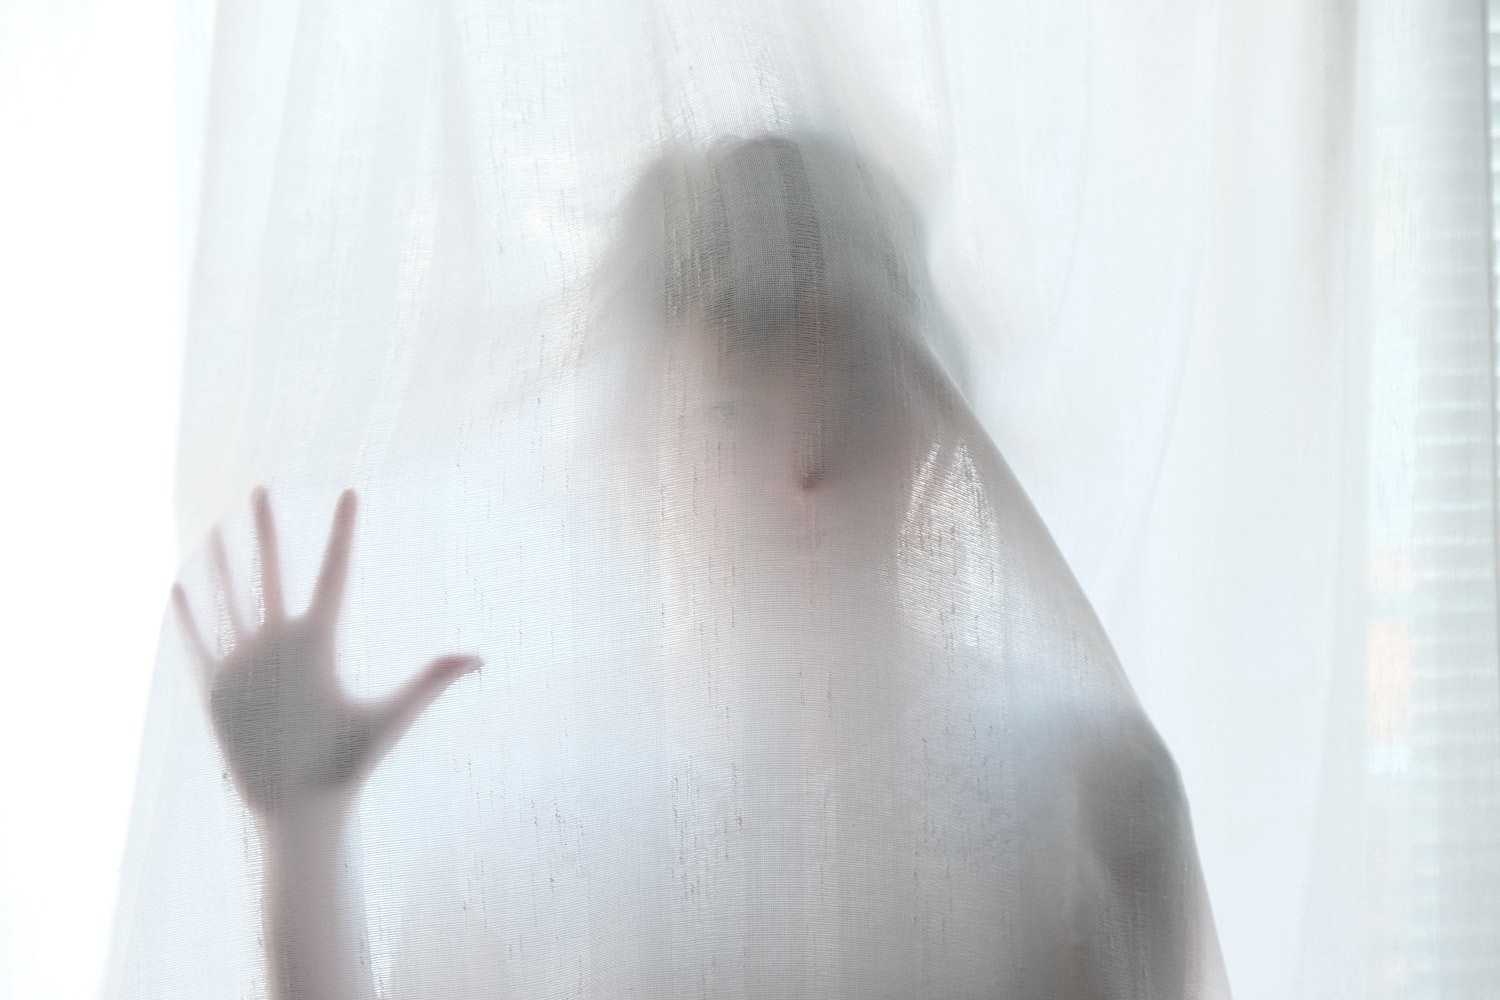 A woman standing behind a white see-through curtain.